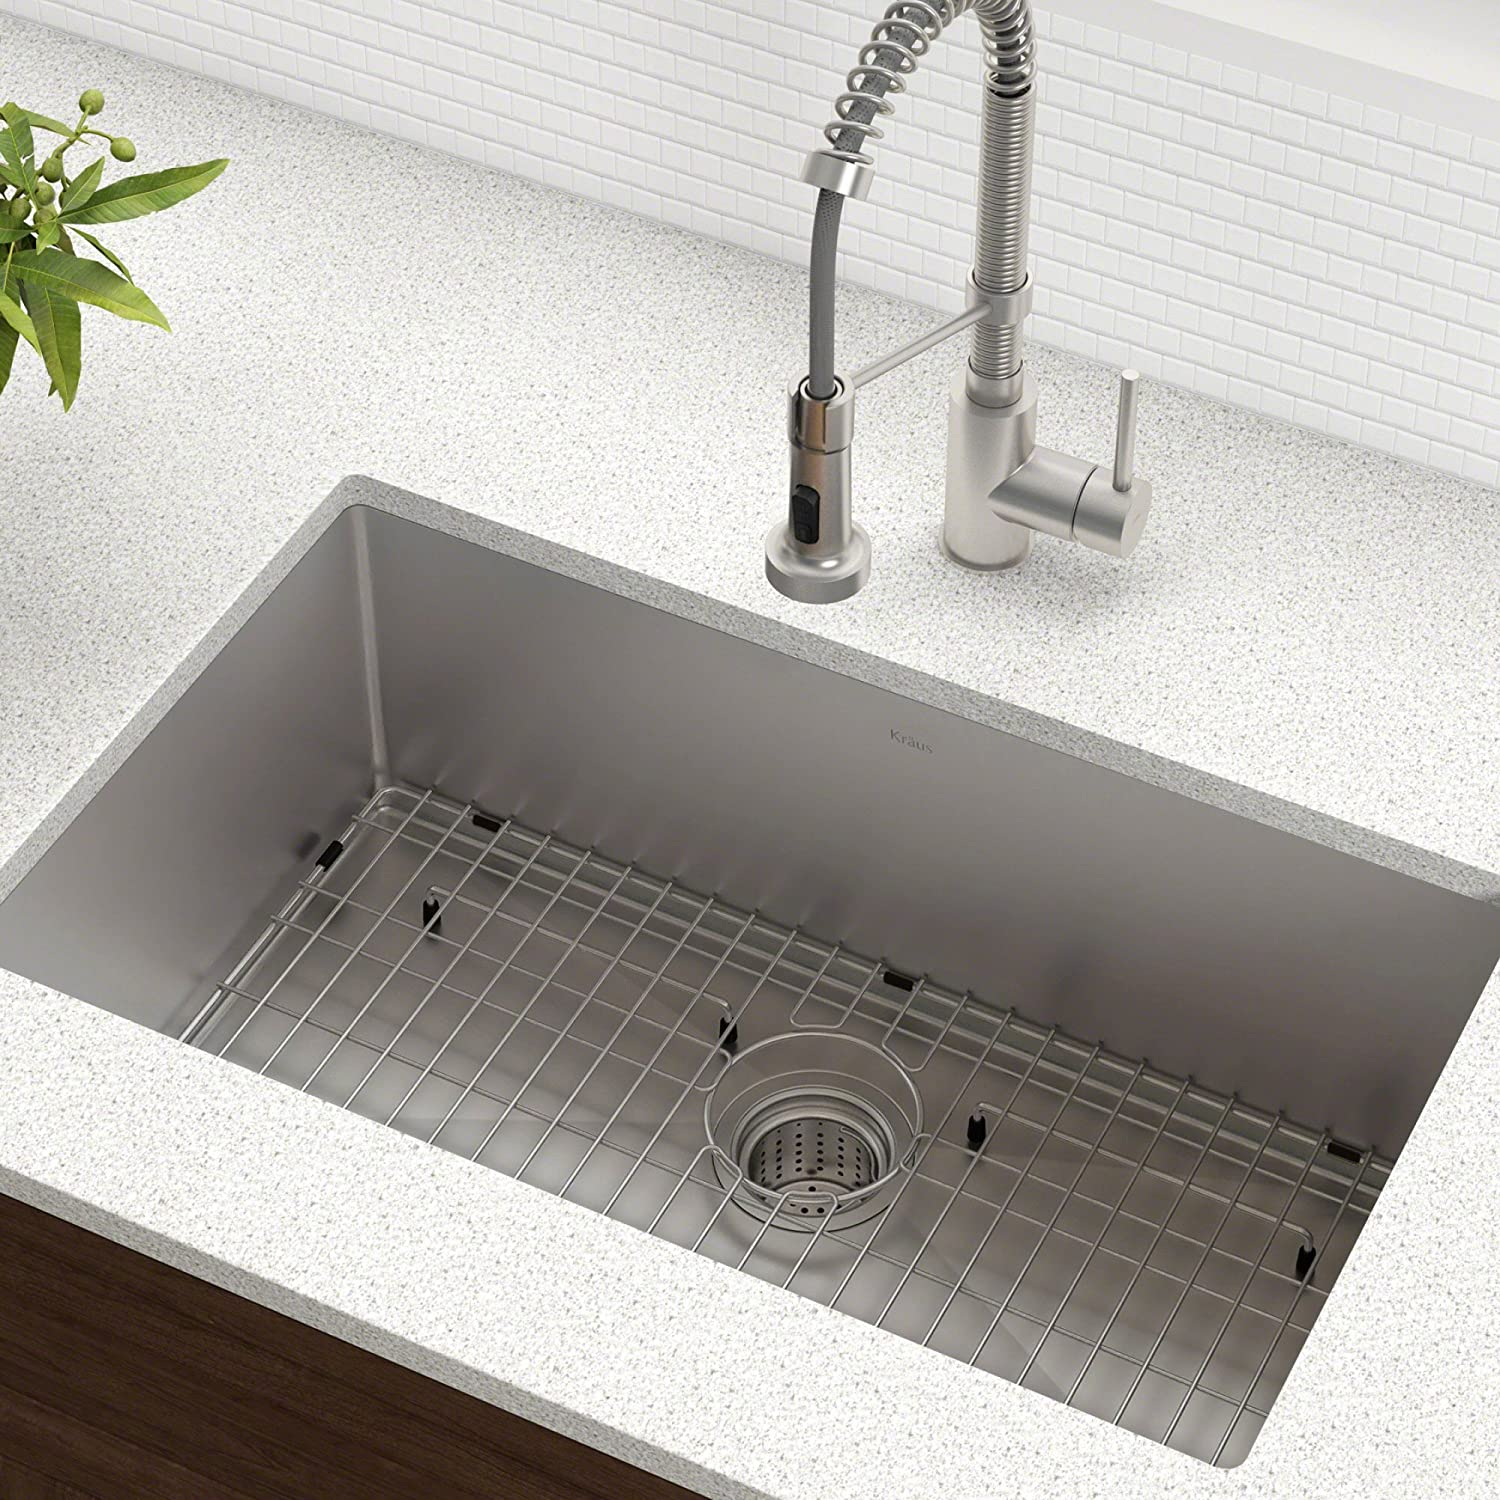 Kraus Undermount Kitchen Sink